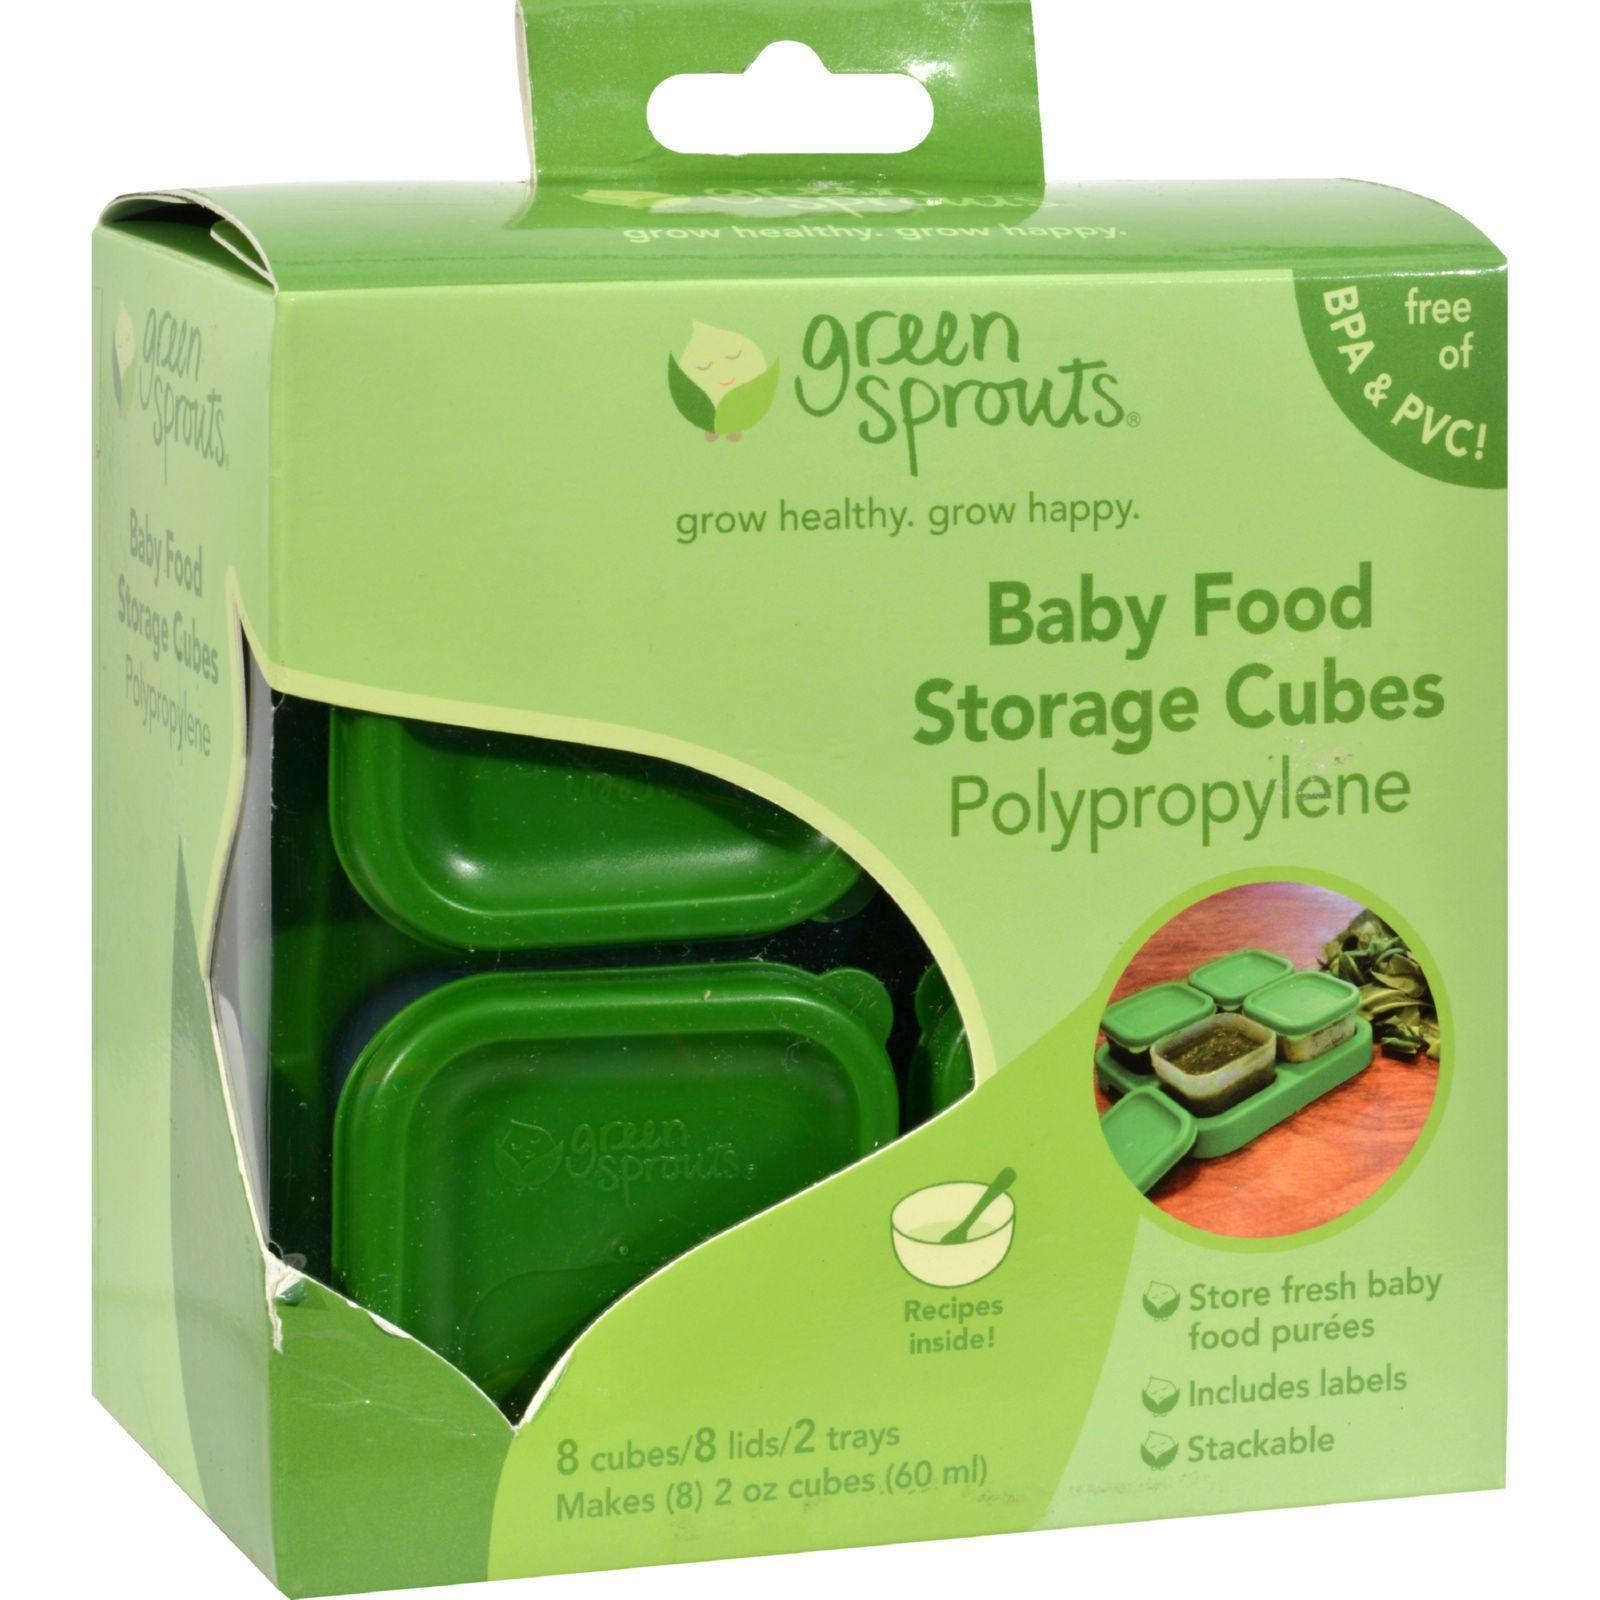 Freeze or refrigerate fresh homemade baby food for later. Each Tray holds  sc 1 st  Pinterest & Green Sprouts Food Storage Cubes - 8 Pack | Homemade baby foods ...